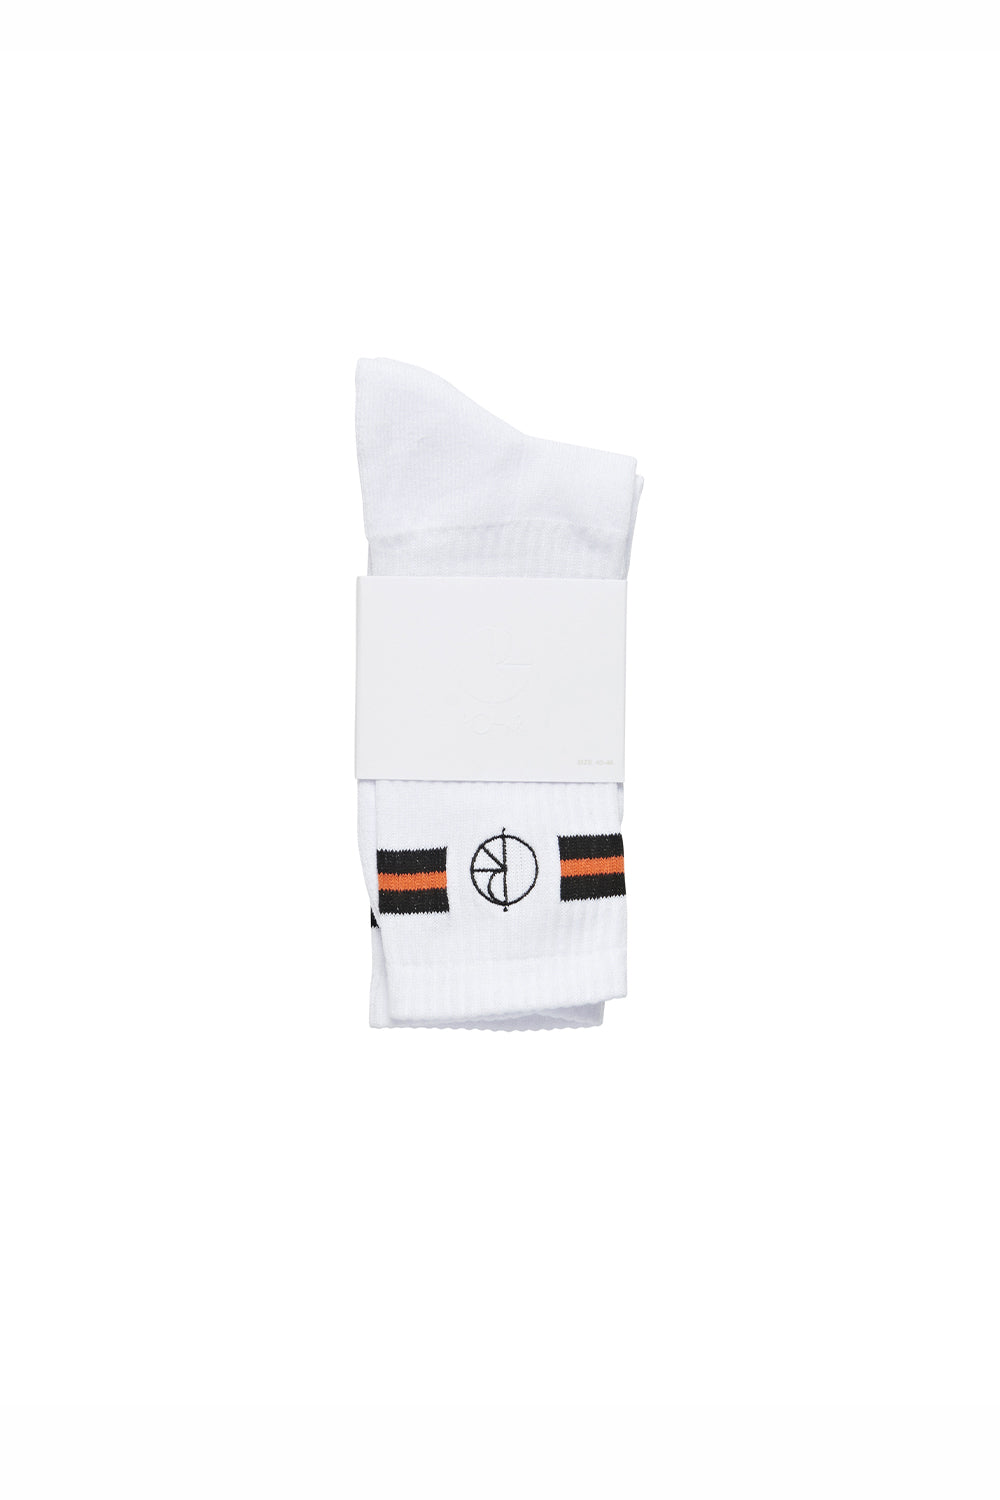 Polar Skate Co Stroke Logo Socks - Black/White/Orange